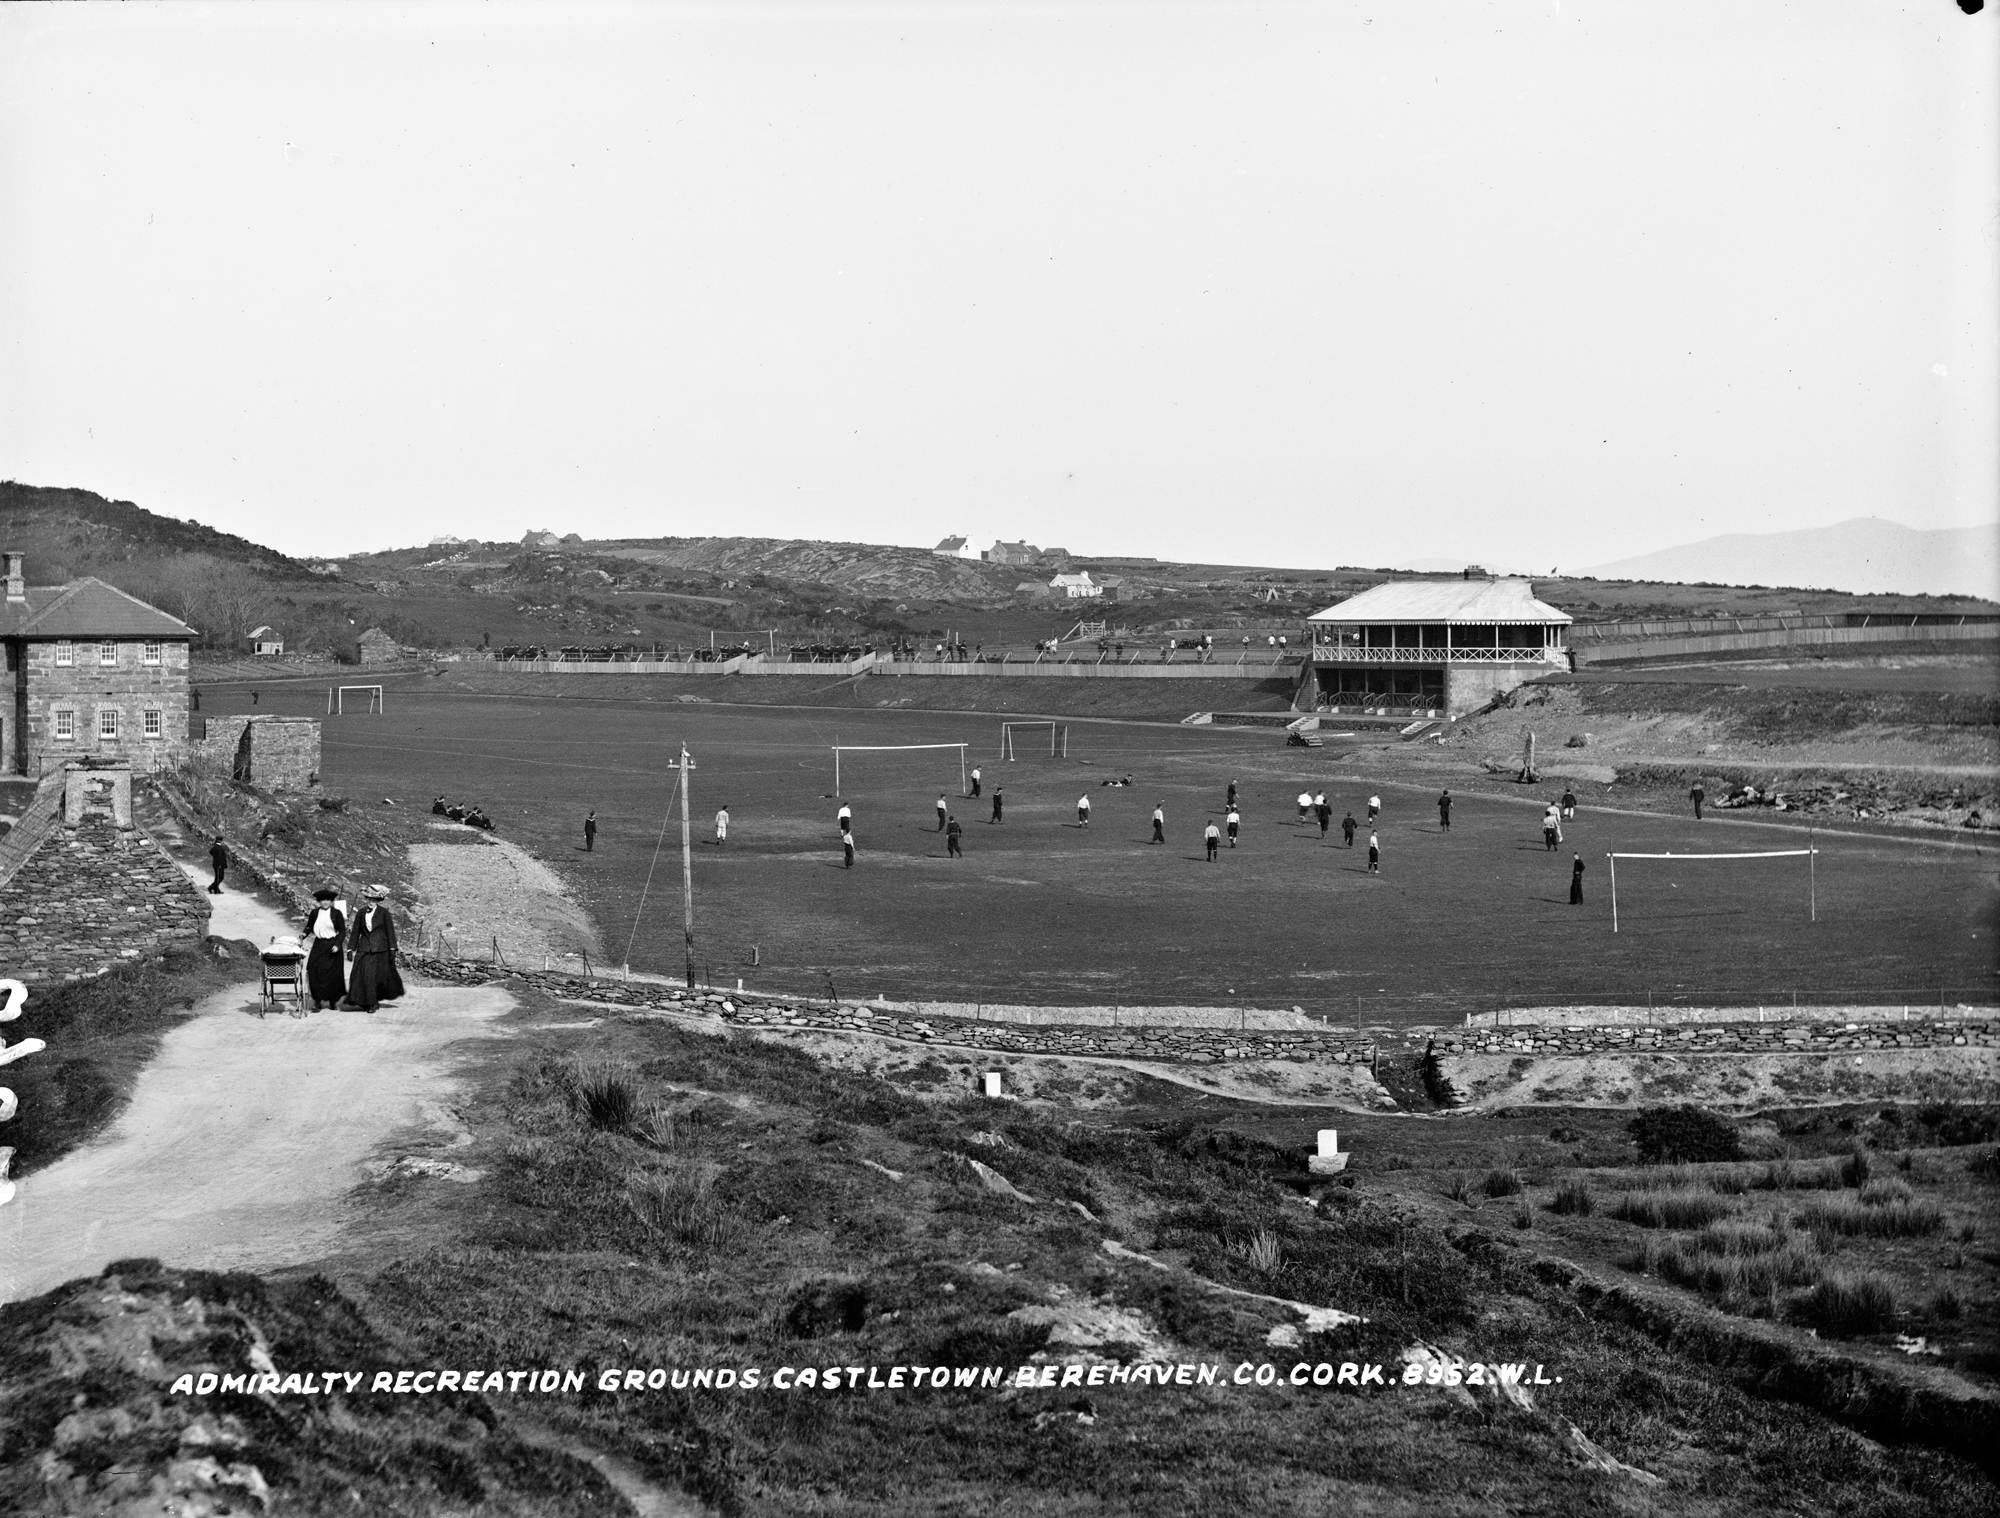 Admiralty Recreation Grounds, Castletownbere, Co. Cork